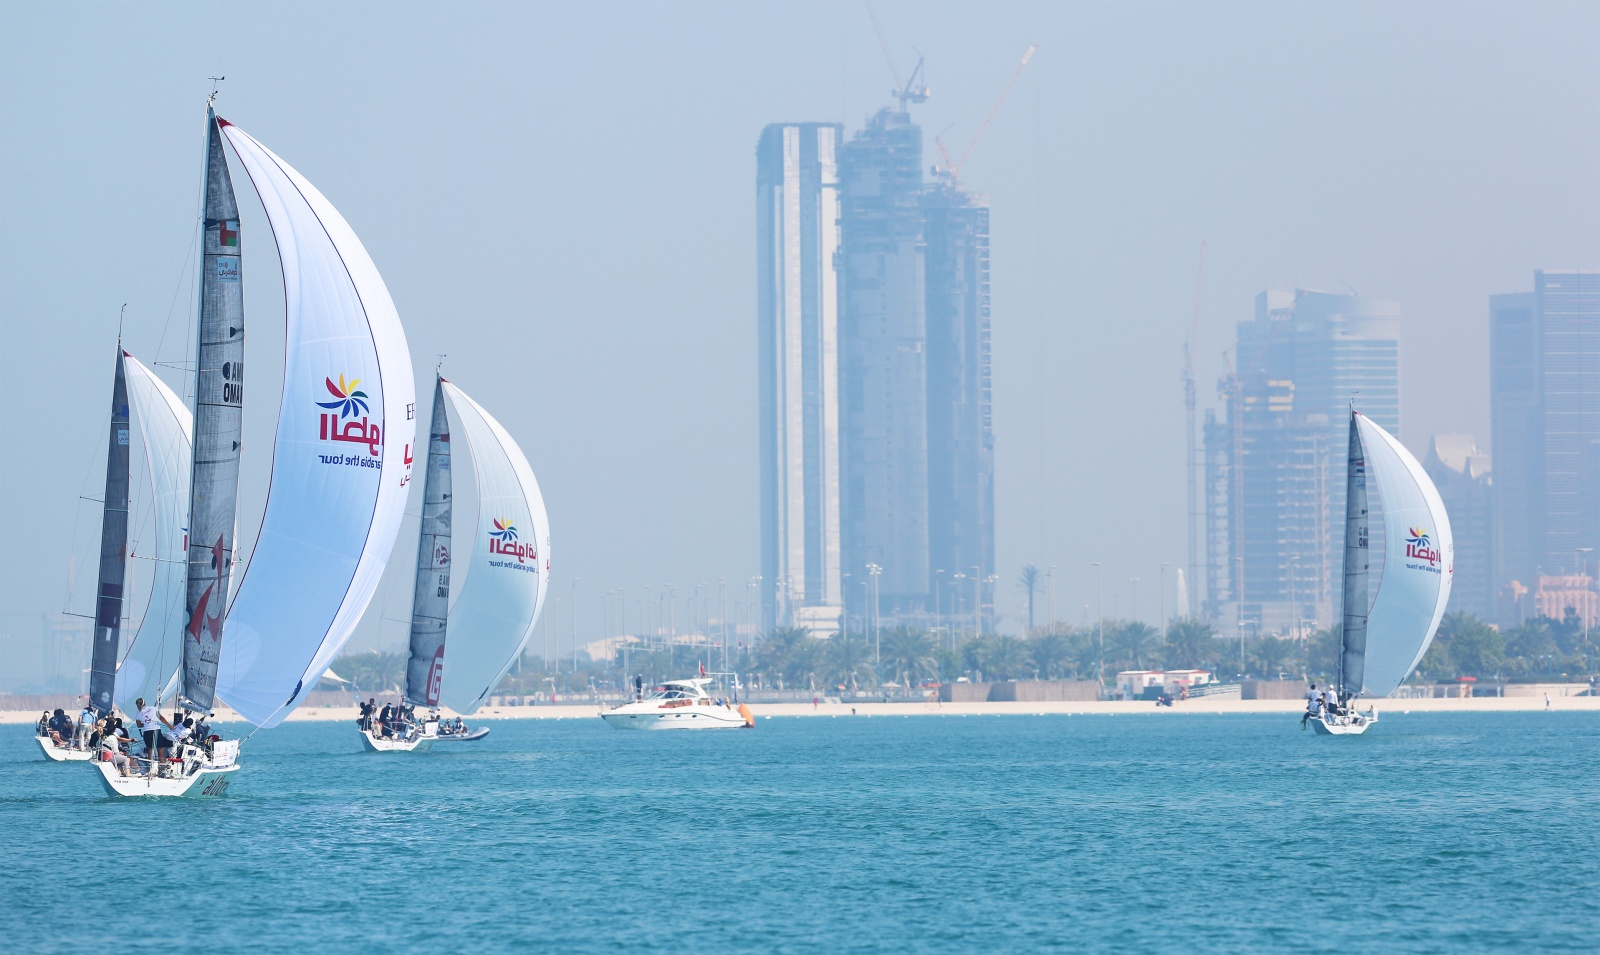 Sailing Arabia - The Tour (Abu Dhabi)